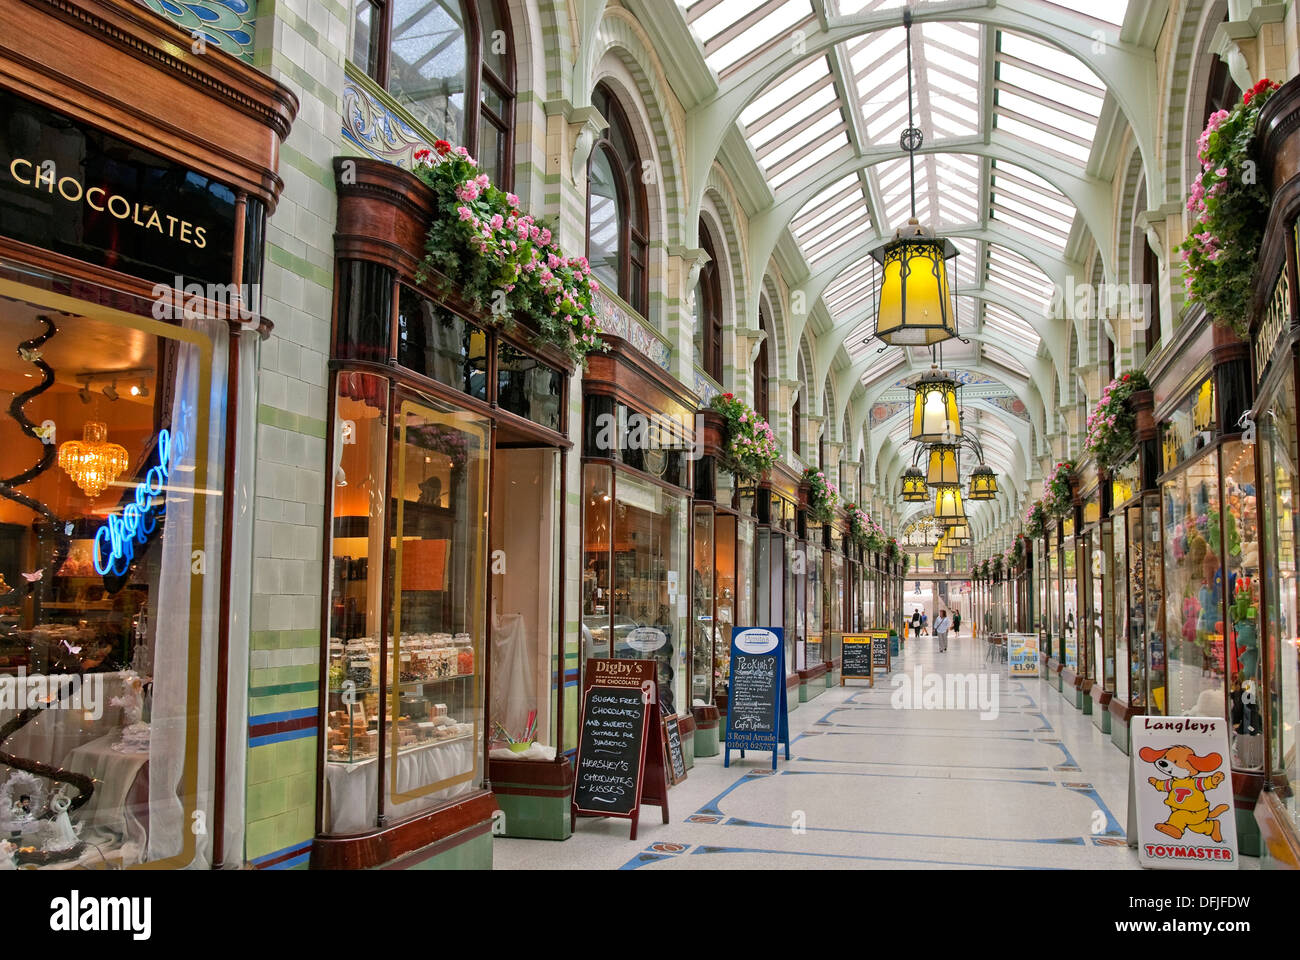 Norwich Royal Arcade that runs from the market place towards Norwich Castle and was designed by architect George Skipper in 1899 - Stock Image